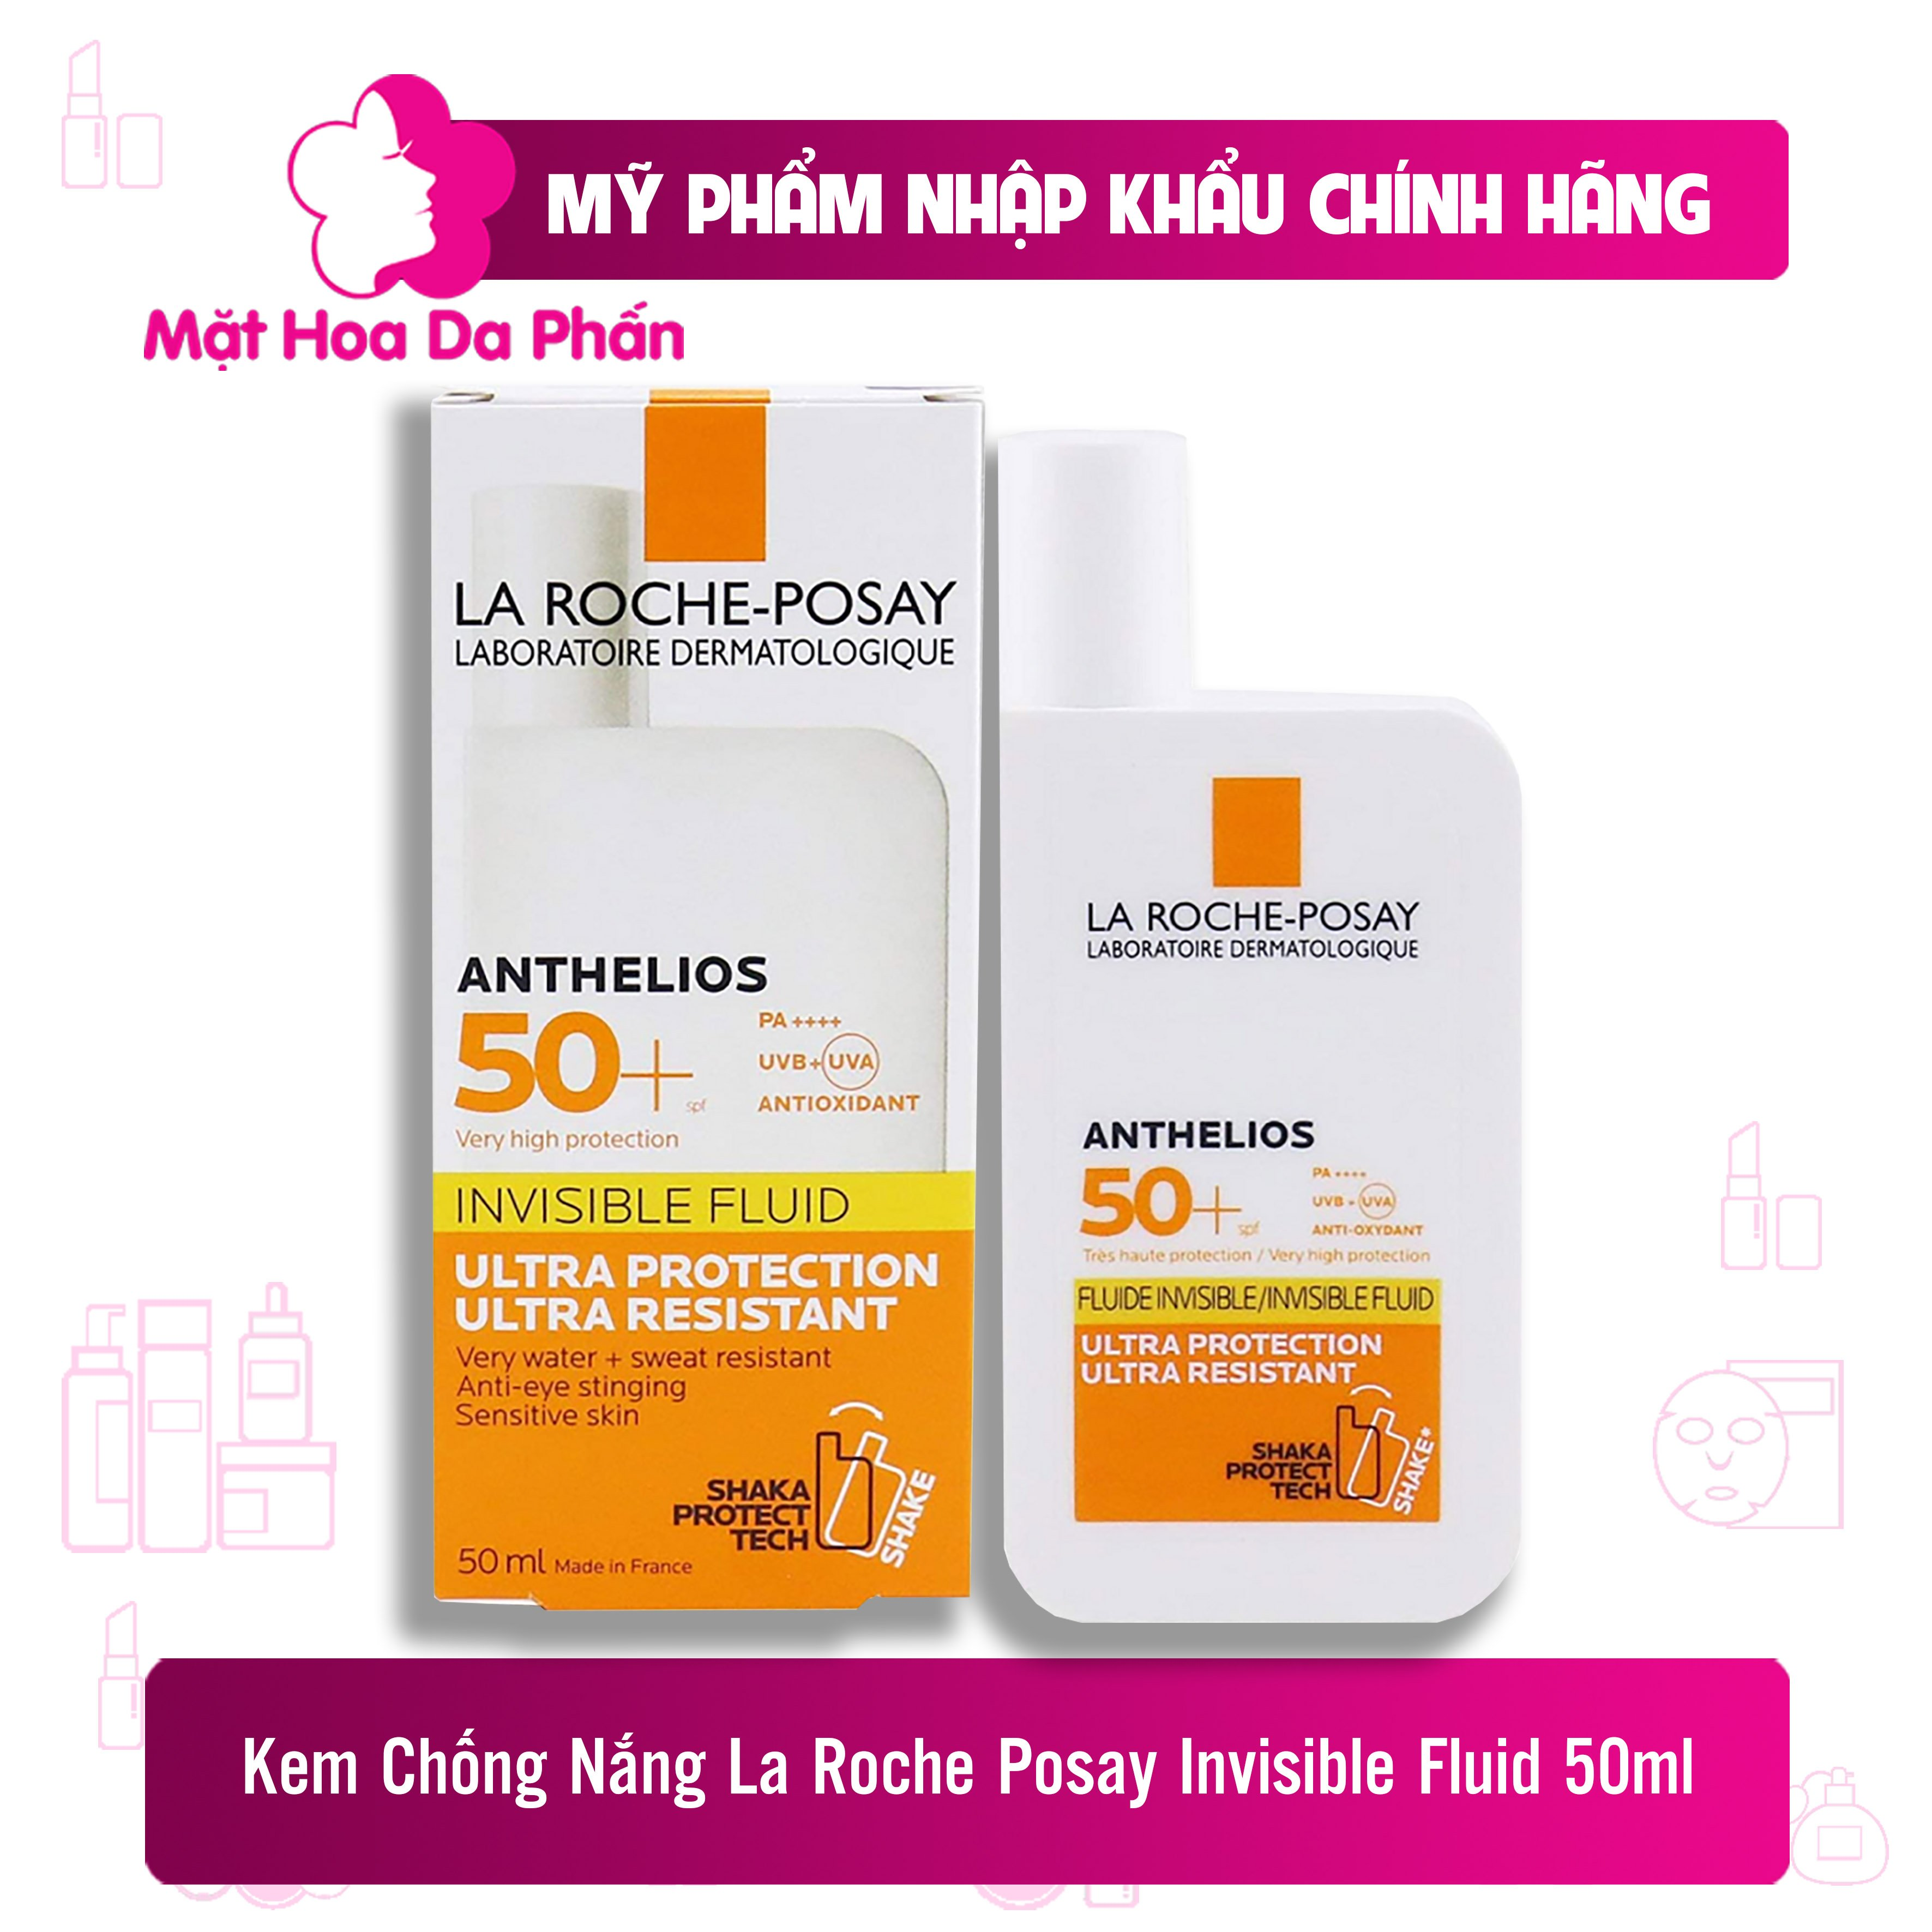 Kem Chống Nắng La Roche-Posay Anthelios Invisible Fluid SPF50+ 50ml